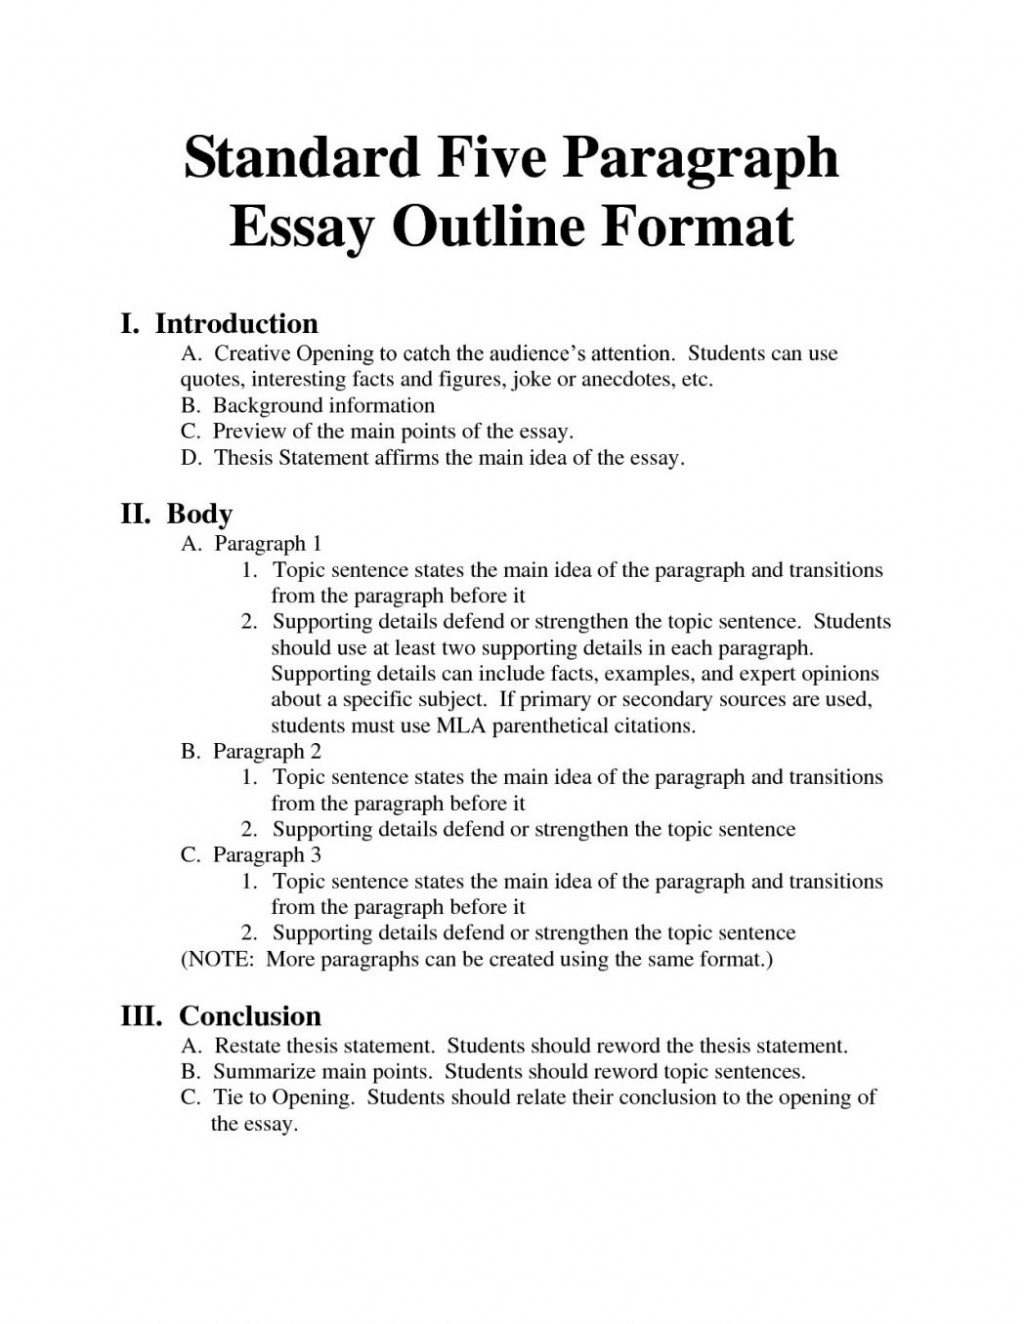 006 Essay Example Name Examples Best Good Structure How To Write Creative Introduction Persuasive Fo Higher English Nonfiction Pdf Writing Side Response College Outstanding Conclusion Topic List Large